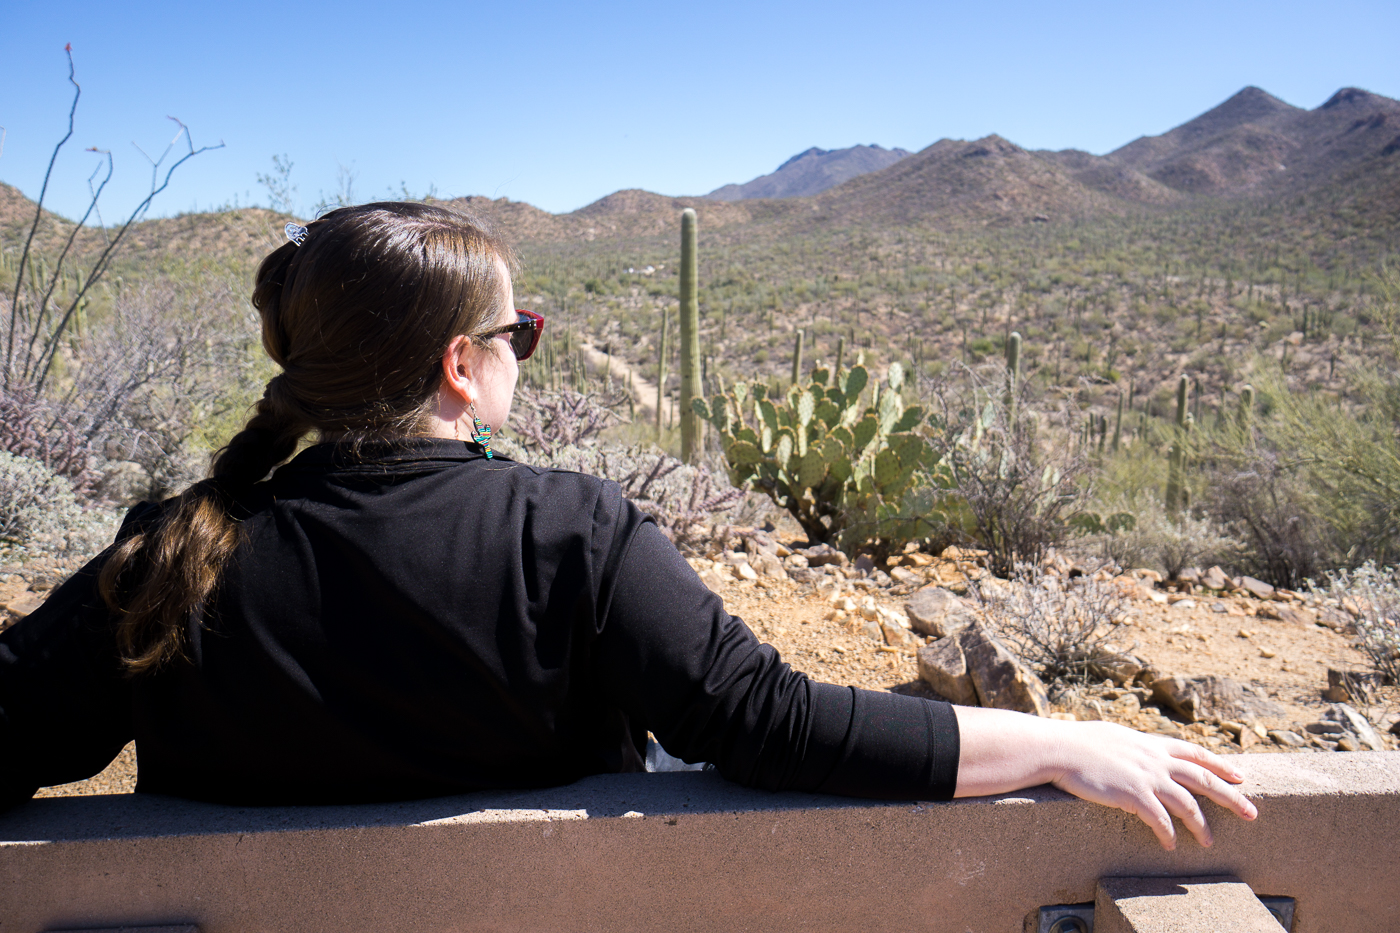 Jennifer sur un banc du Parc national de Saguaro en Arizona